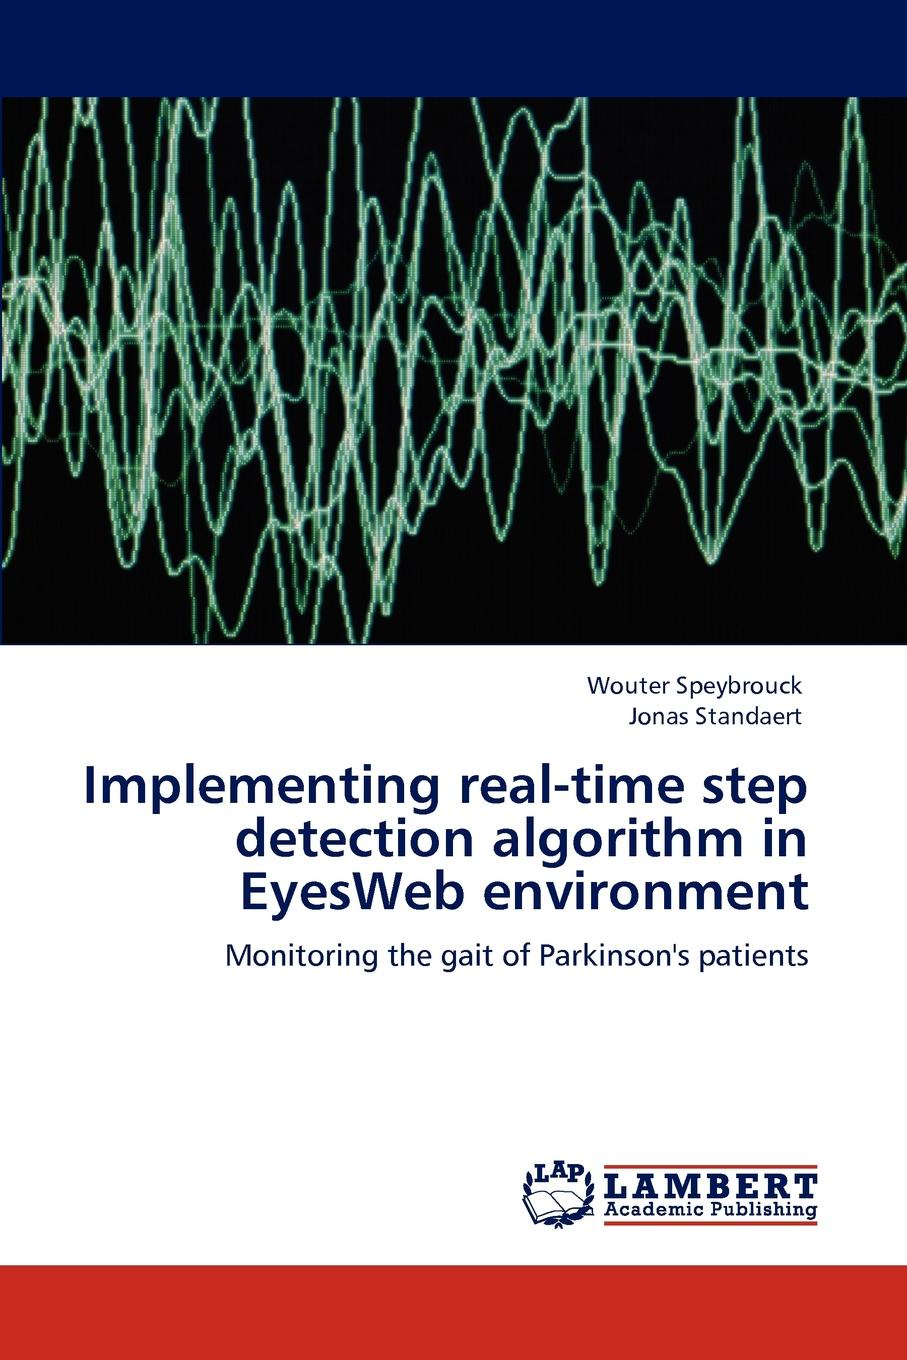 Wouter Speybrouck, Jonas Standaert Implementing real-time step detection algorithm in EyesWeb environment patricia lightner parkinson s disease and me walking the path